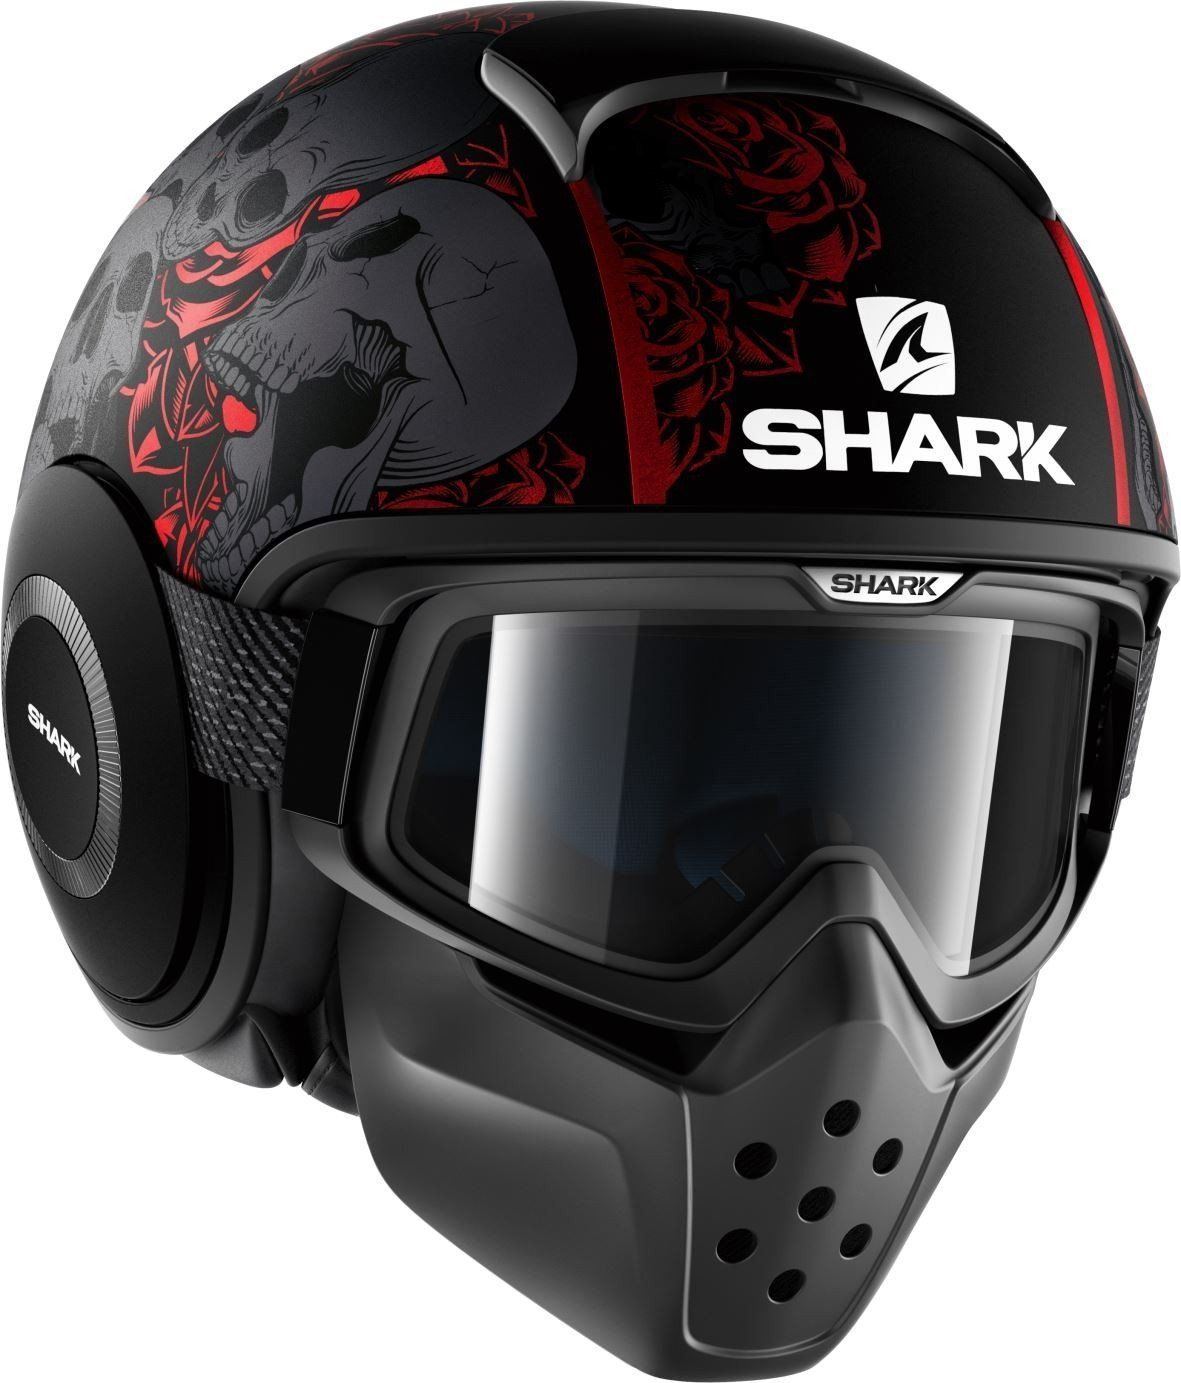 Shark Raw Helmet Review A Hybrid Helmet Motorcycle Helmets With